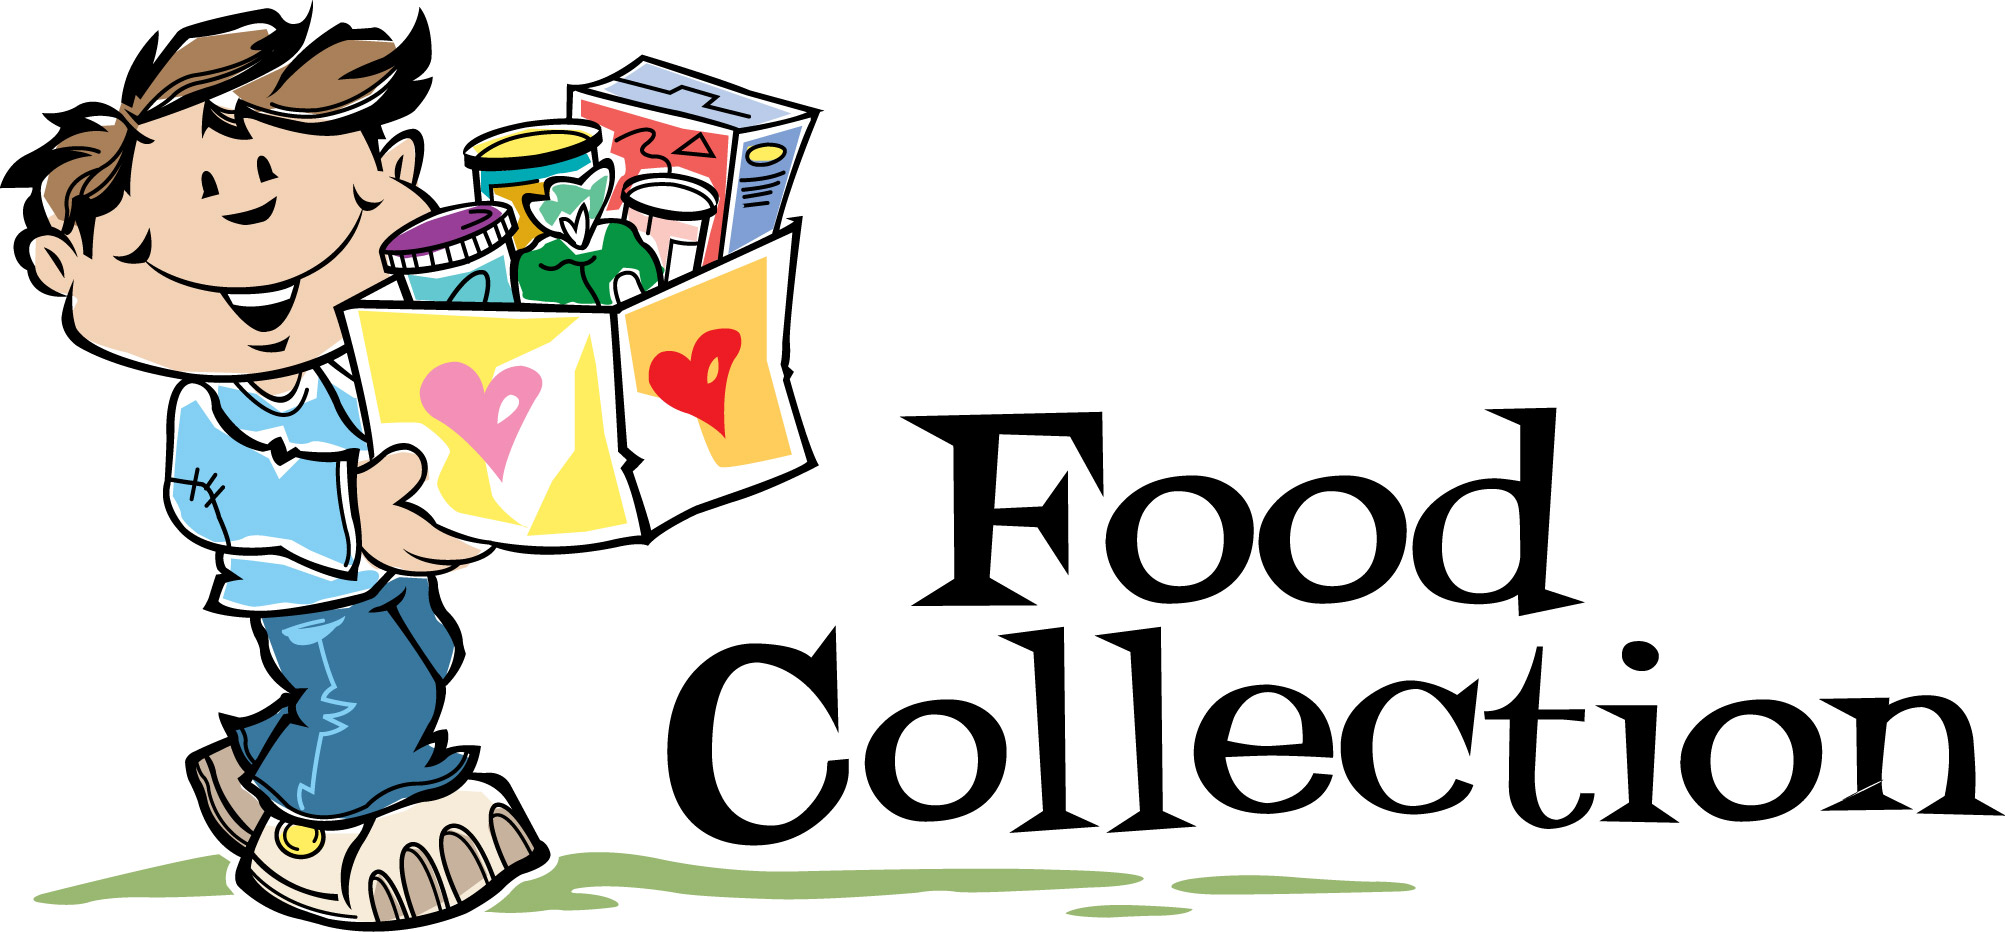 Food donation river style. Bank clipart kid